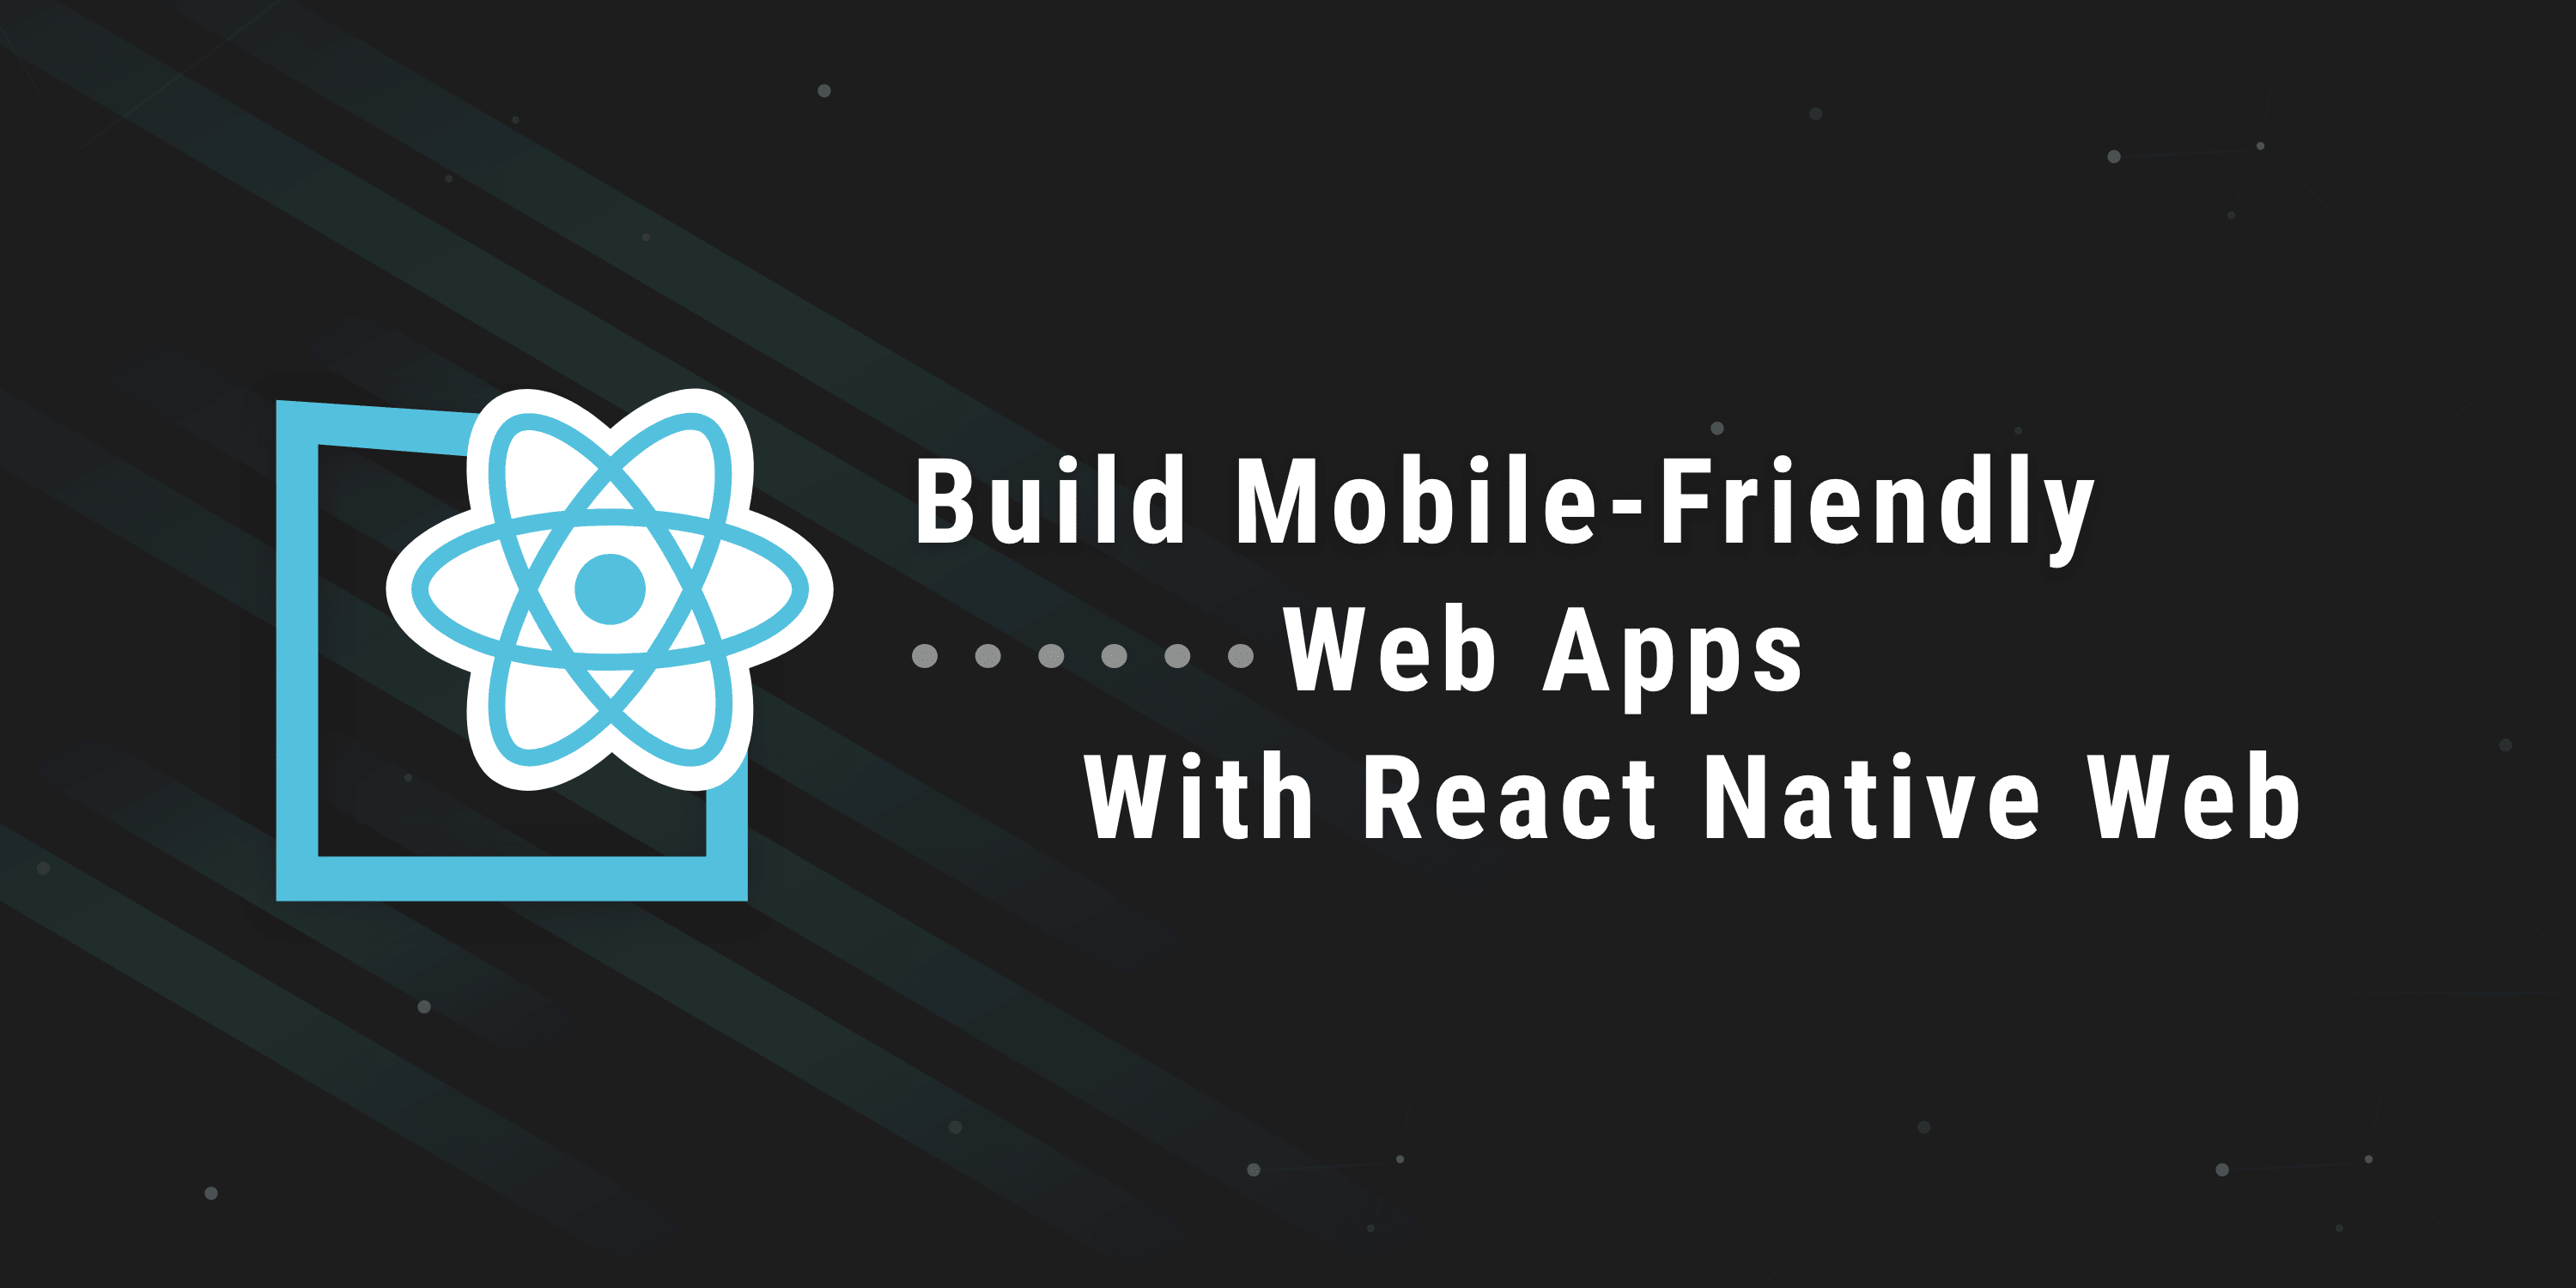 Build Mobile-Friendly Web Apps with React Native Web ― Scotch io